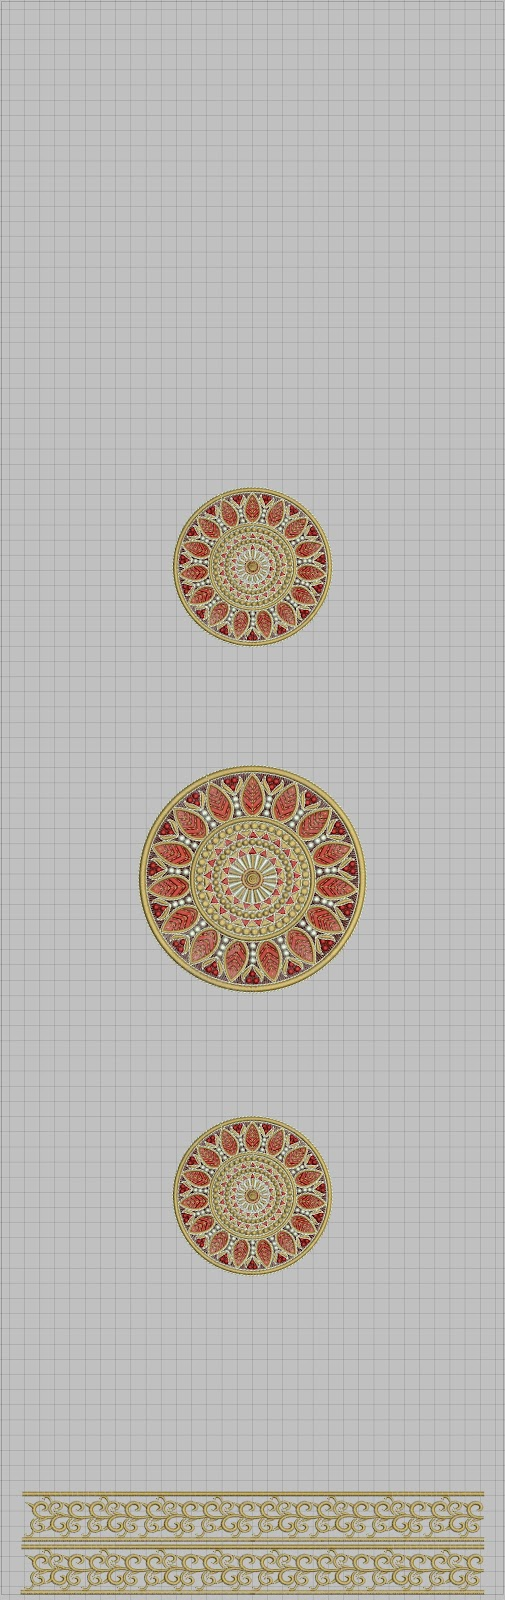 Free emb embroidery designs for sale